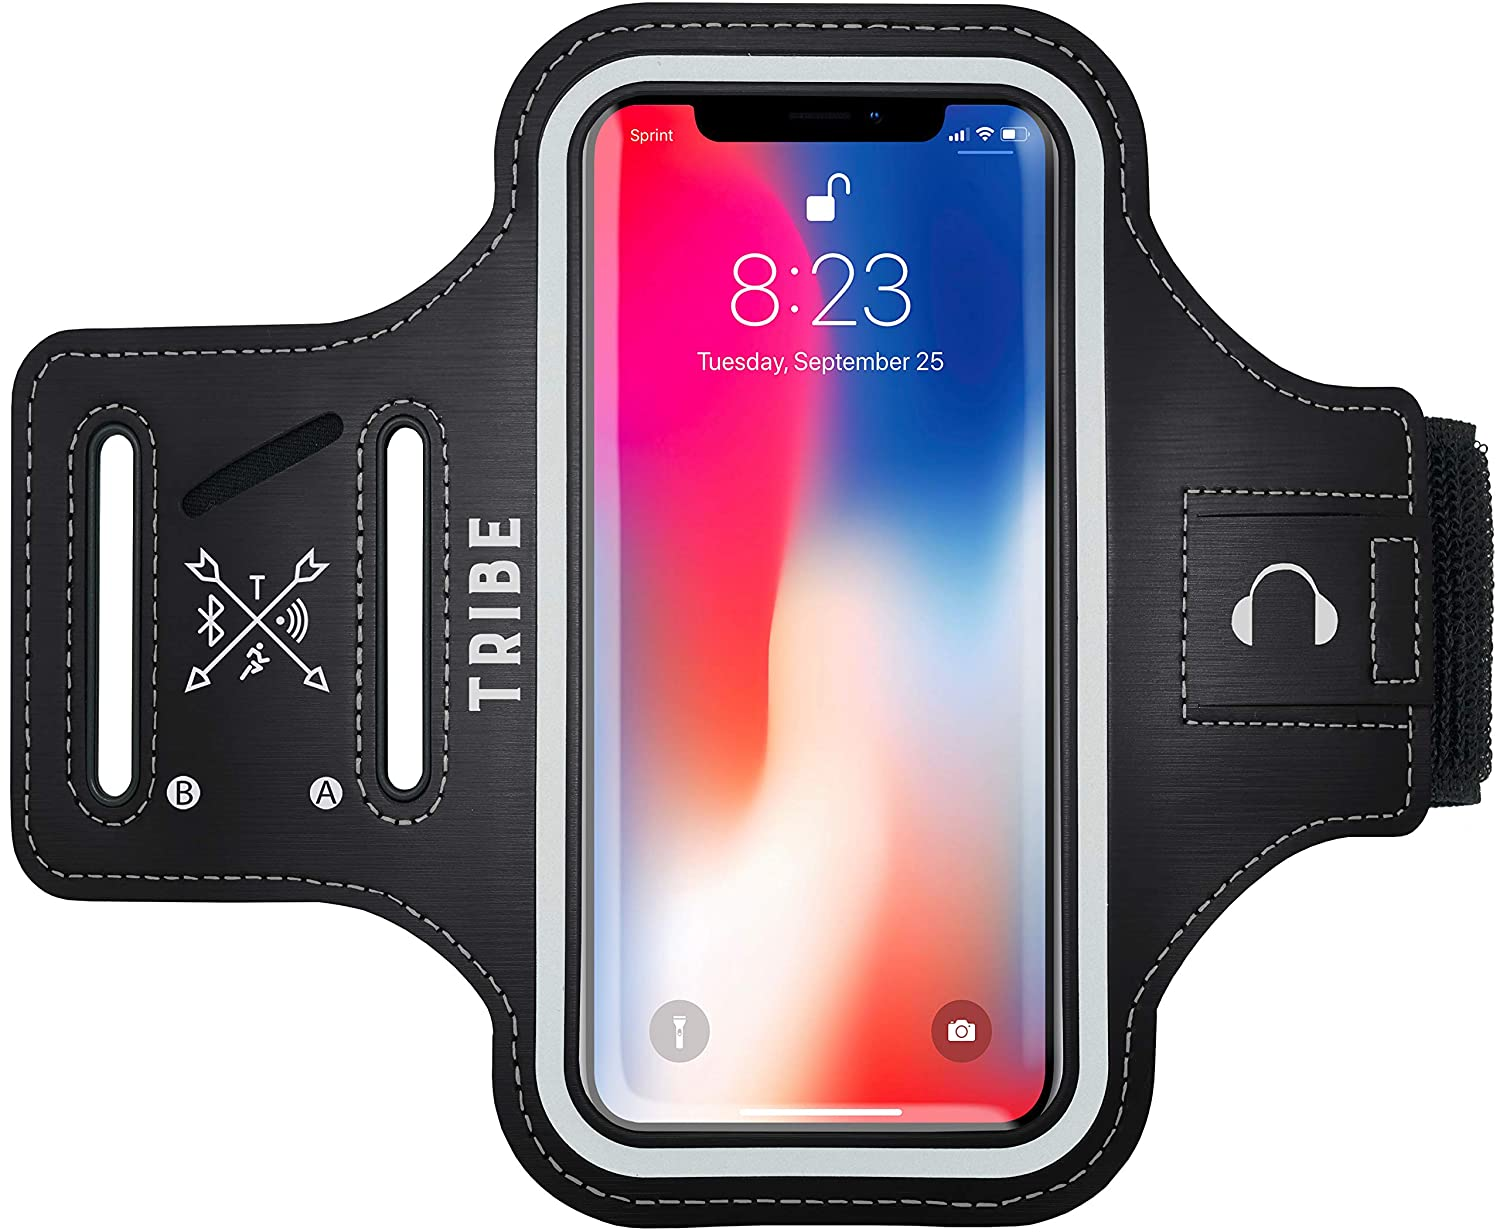 S6 Hiking A8 with Adjustable Elastic Band /& Key Holder for Running 7 Walking S8 S7 Xs 6 TRIBE Water Resistant Cell Phone Armband Case for iPhone X 6S Samsung Galaxy S9 8